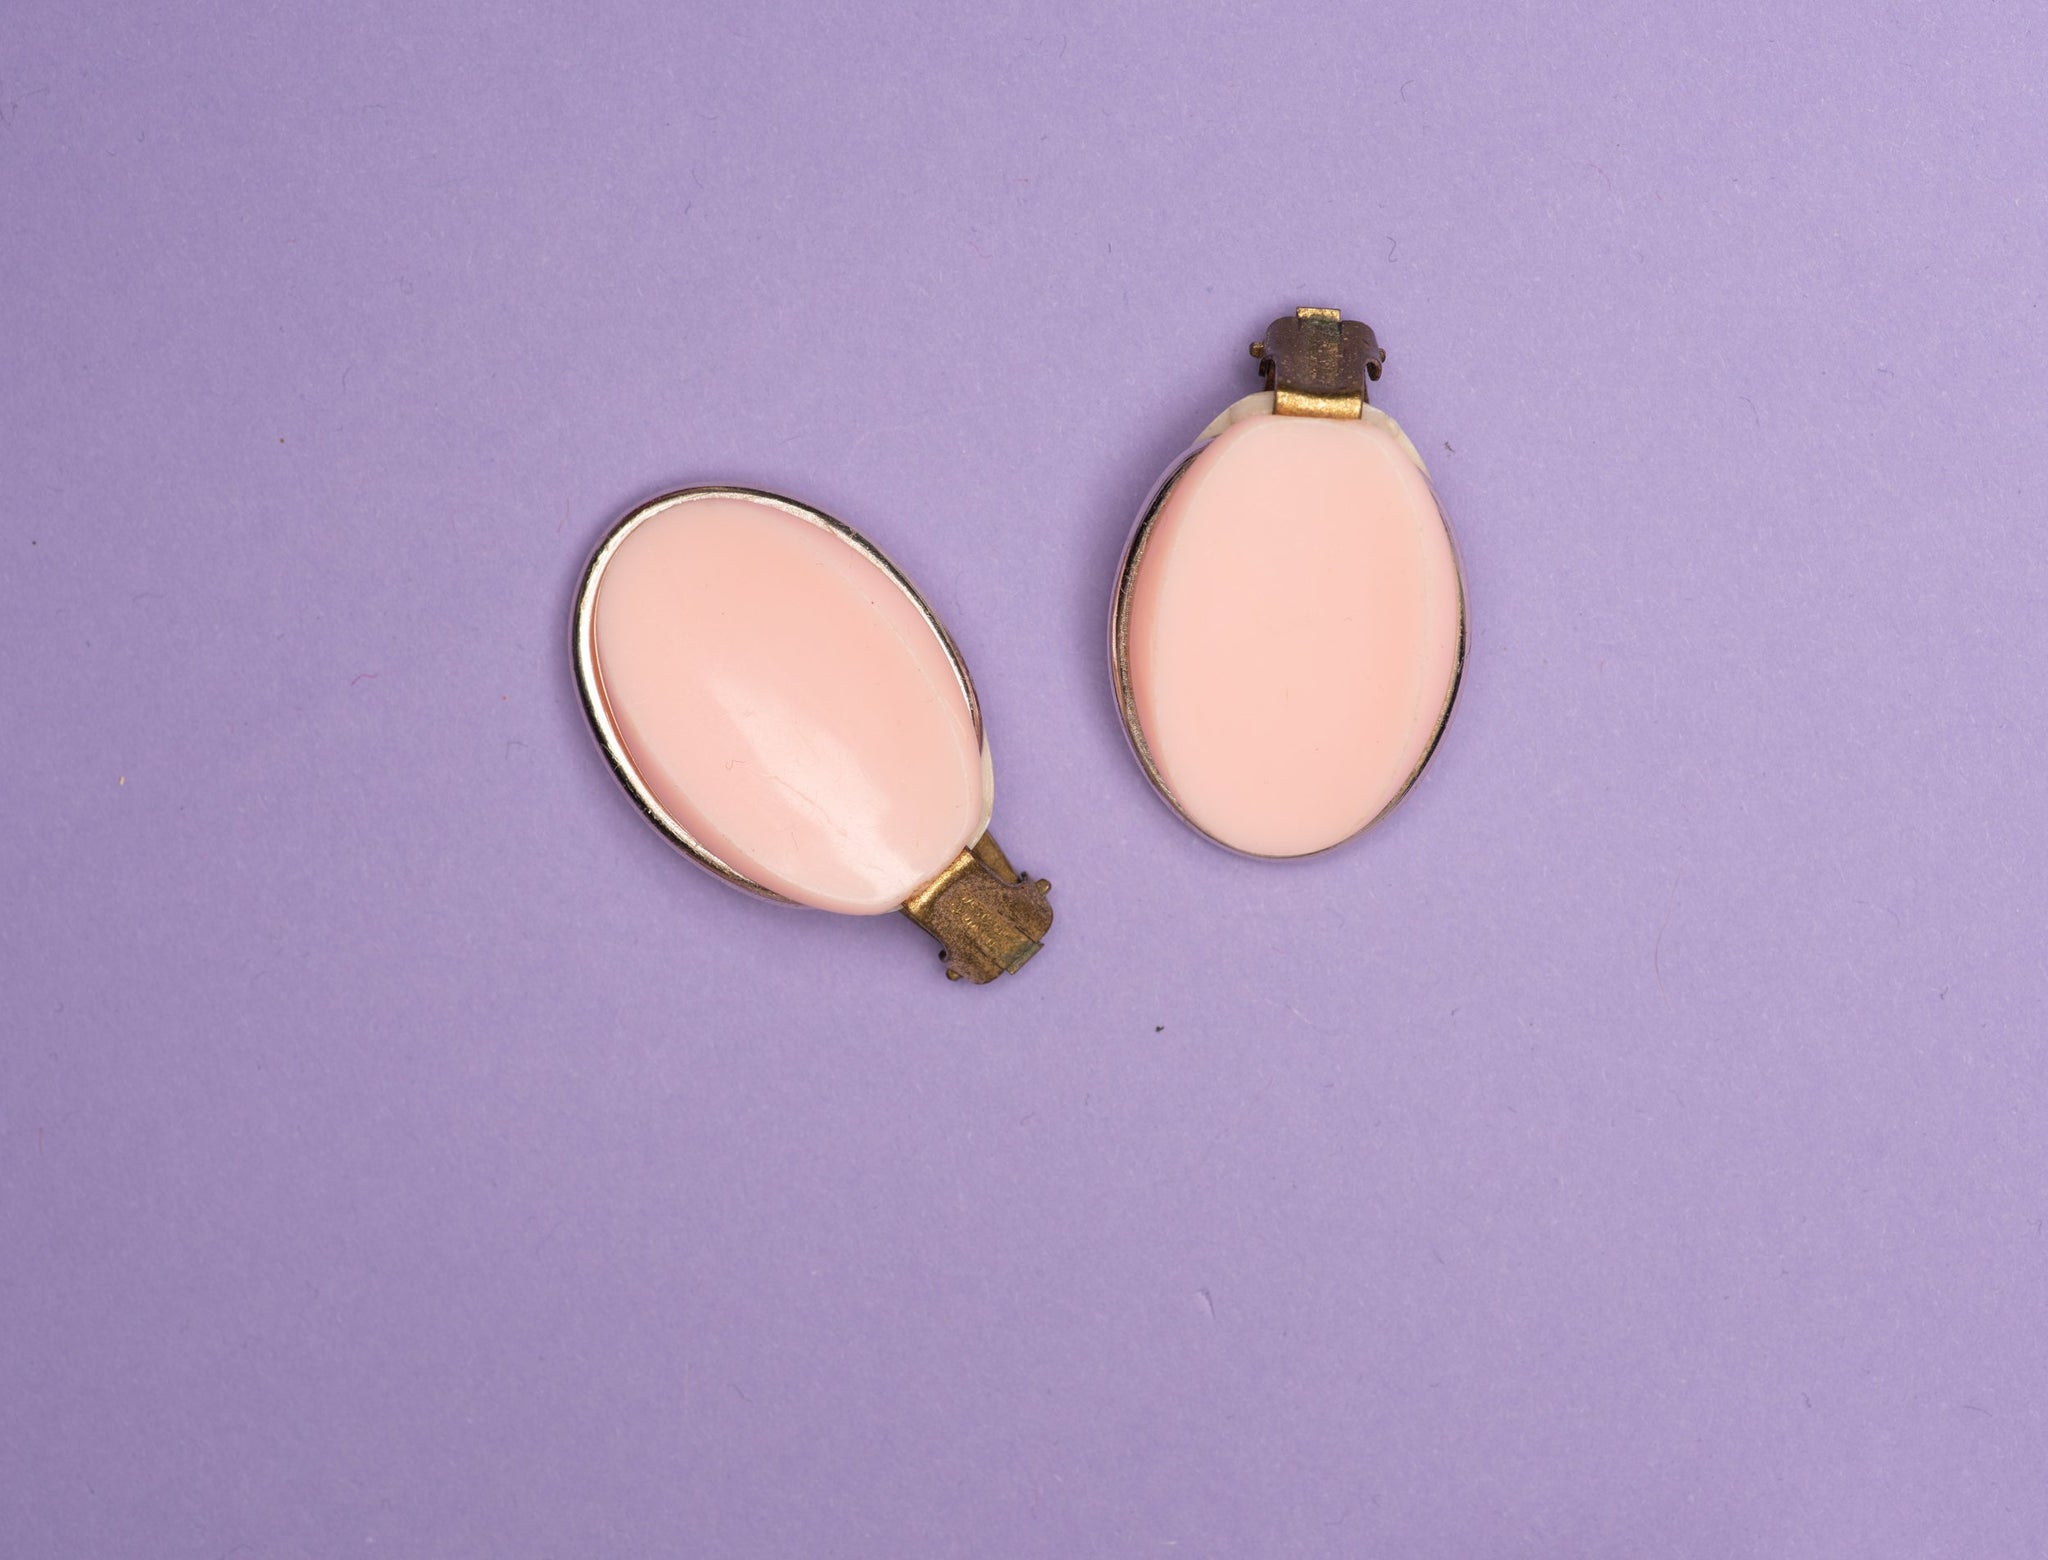 Vintage Pastel Pink Oval Lucite Clip-On Earrings - Closed Caption